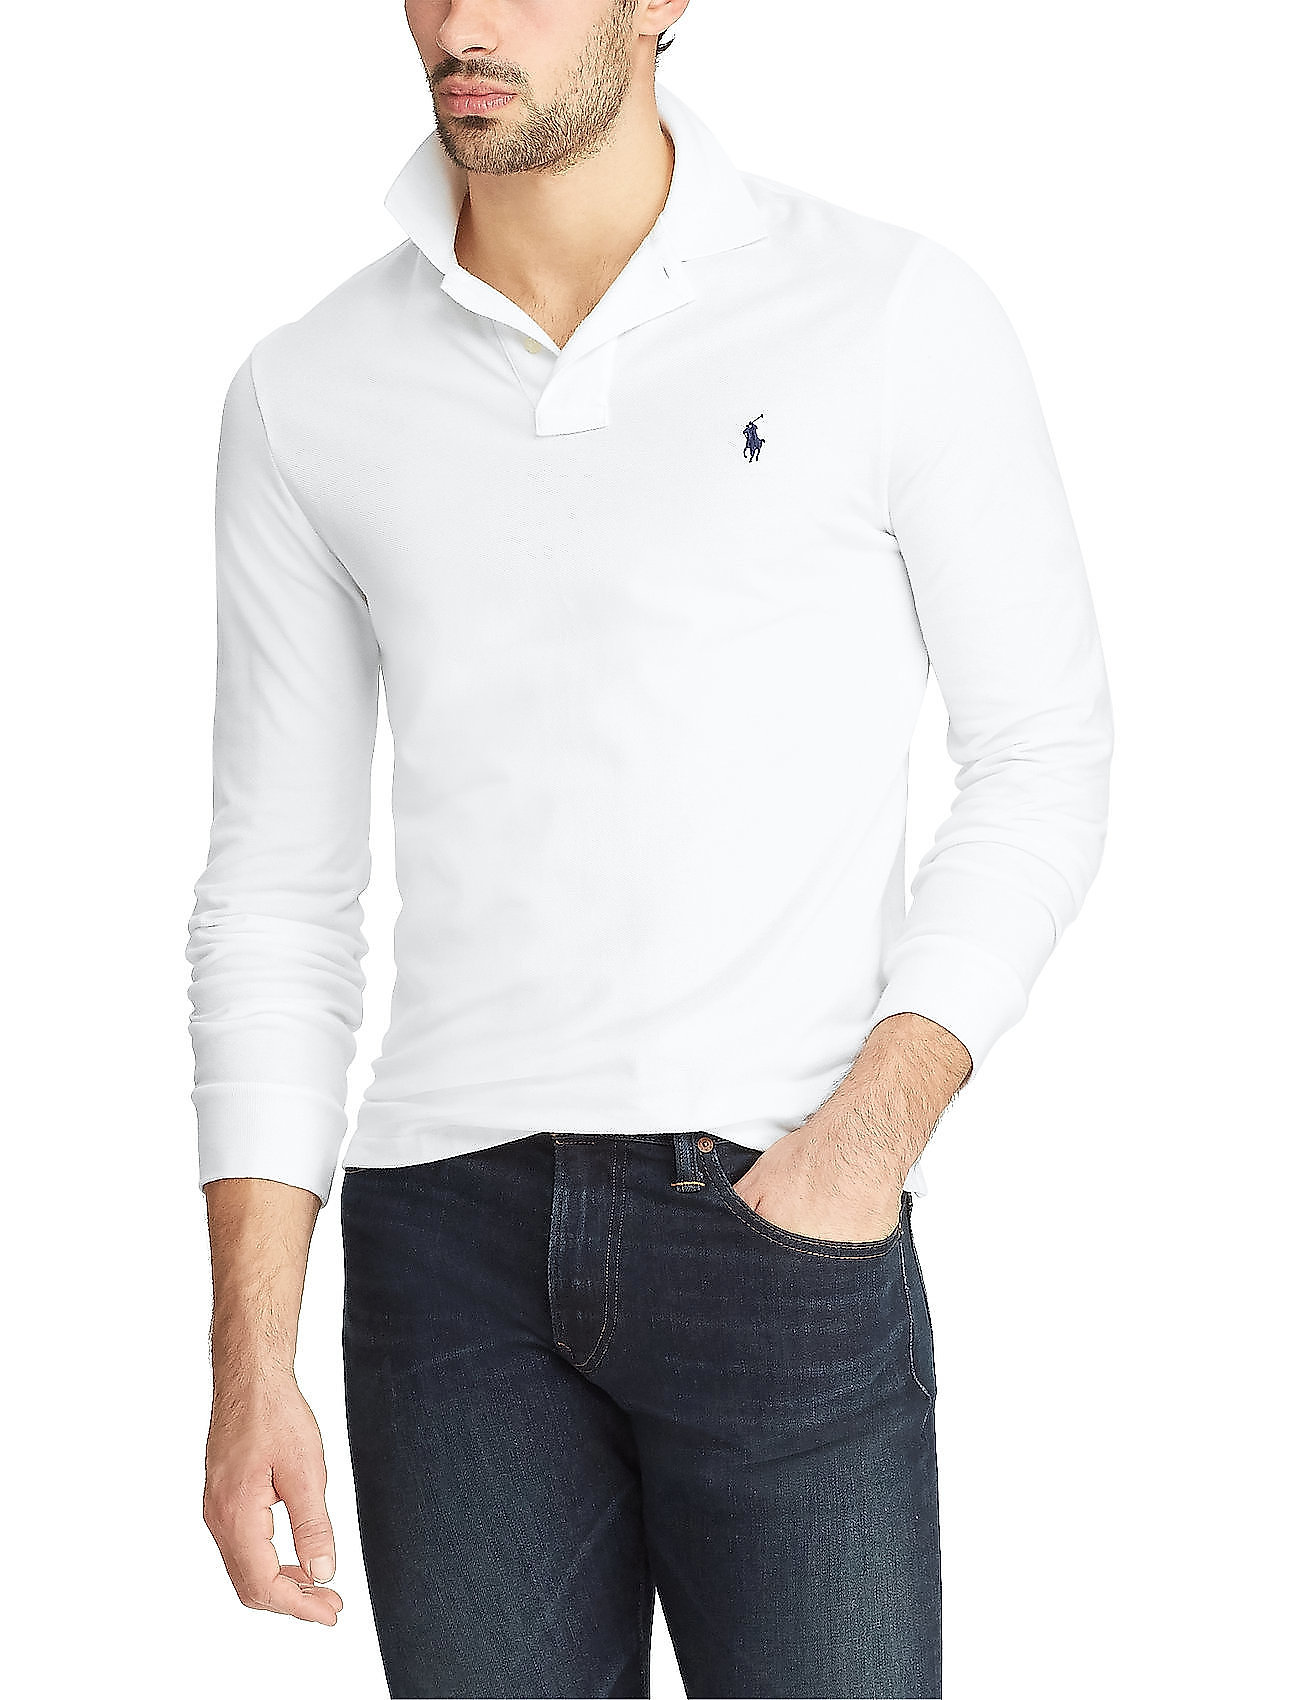 Polo Ralph Lauren - Slim Fit Mesh Long-Sleeve Polo - lange mouwen - white - 0